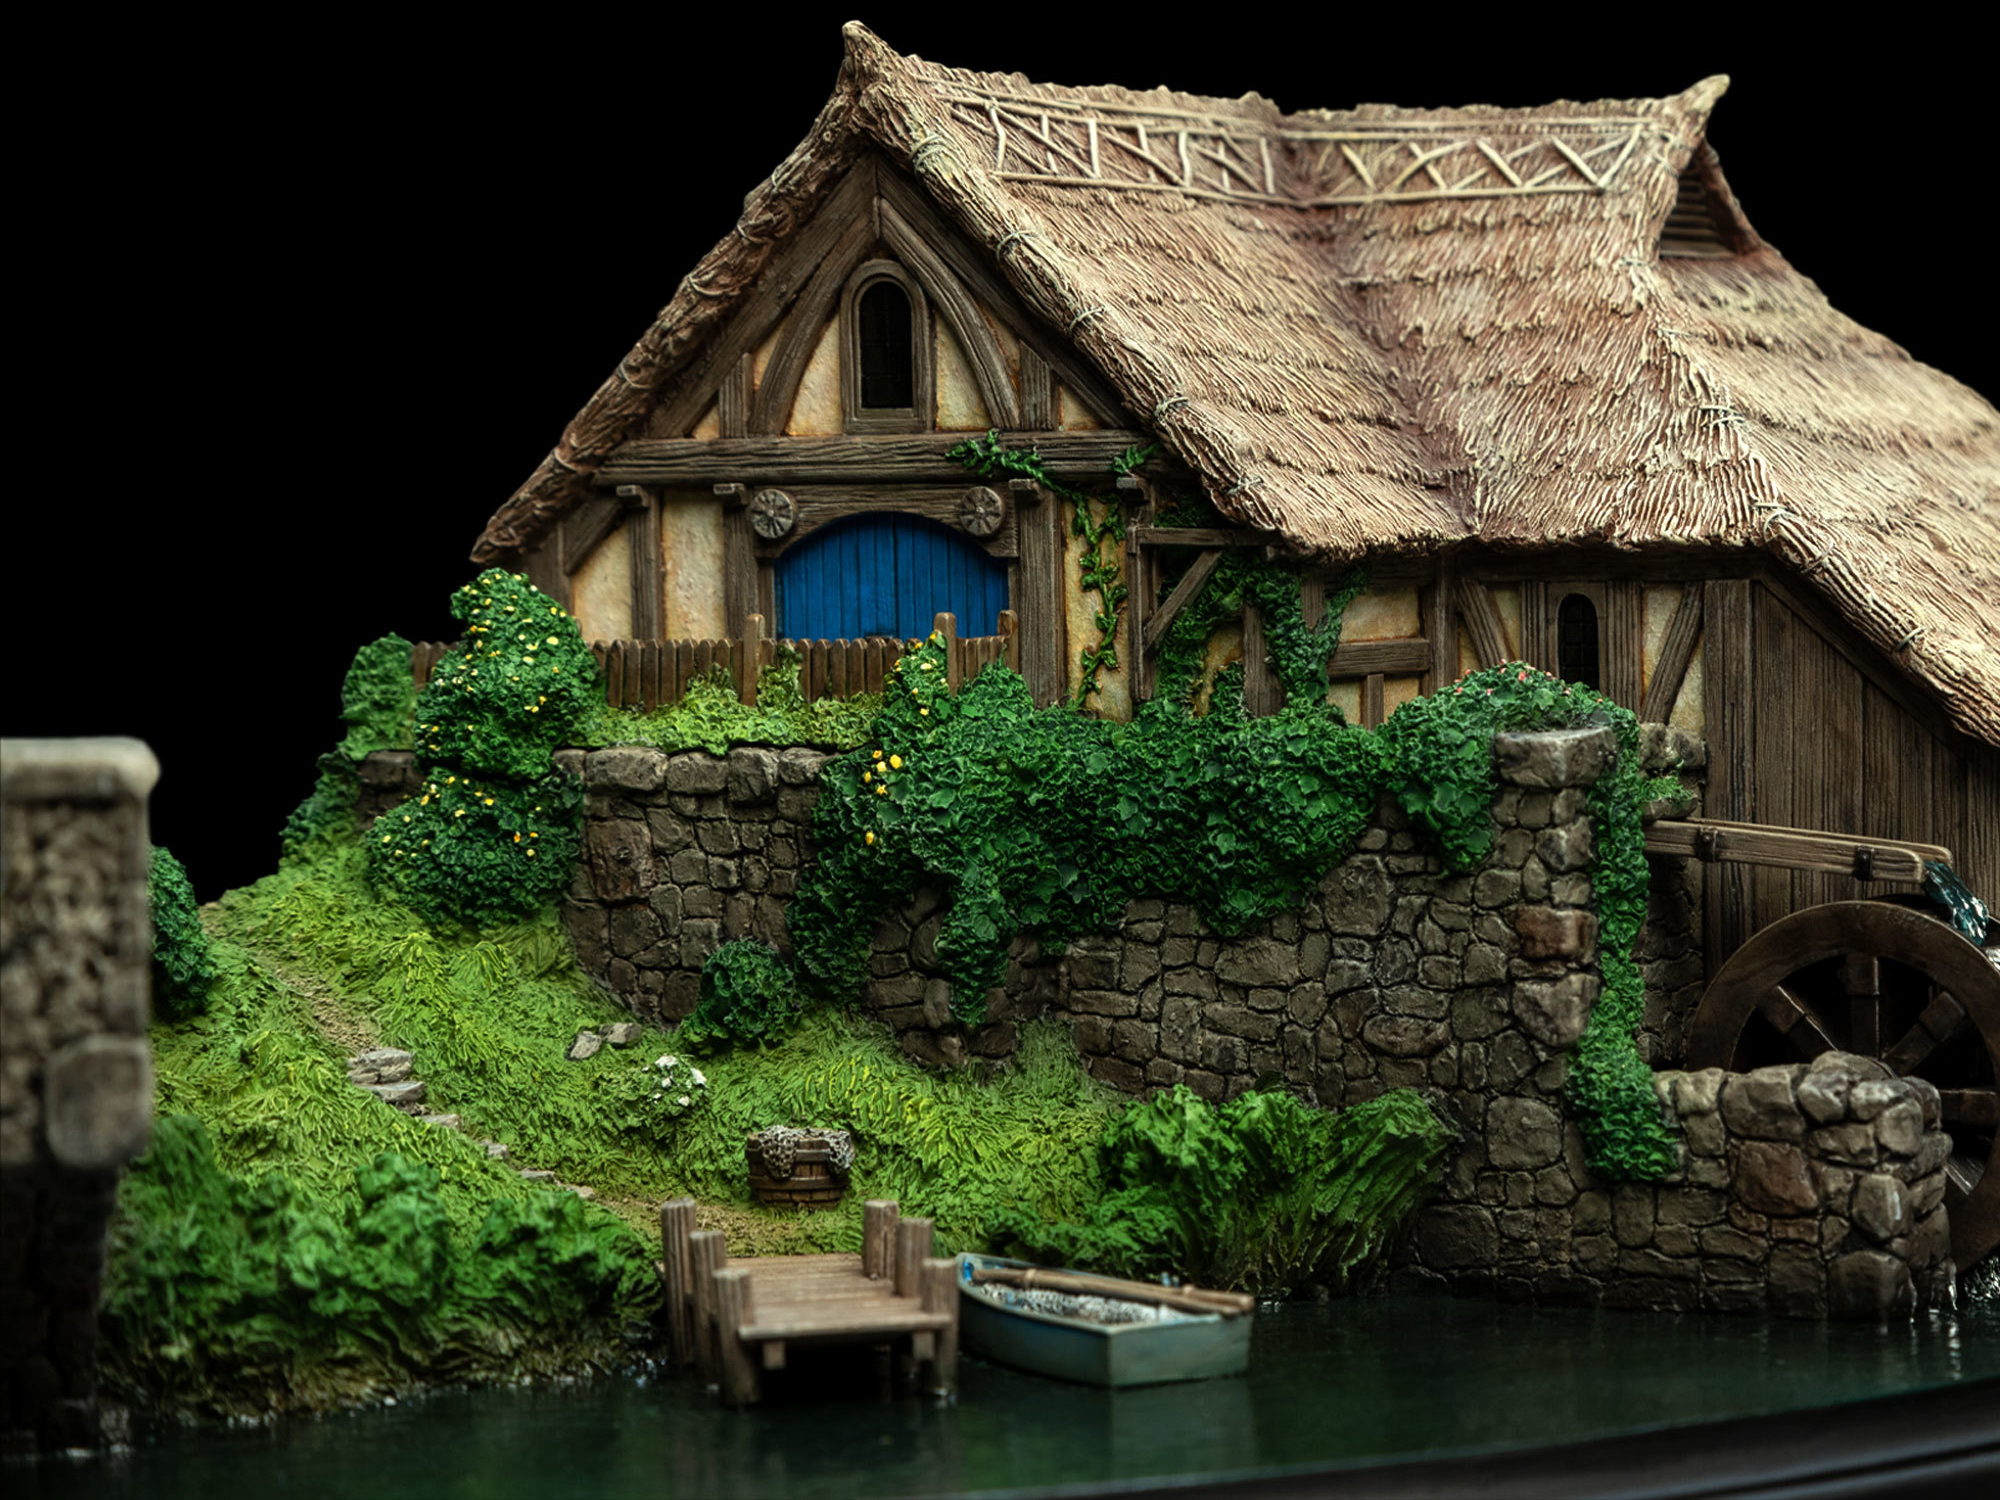 The Hobbit Hobbiton Mill & Bridge Diorama